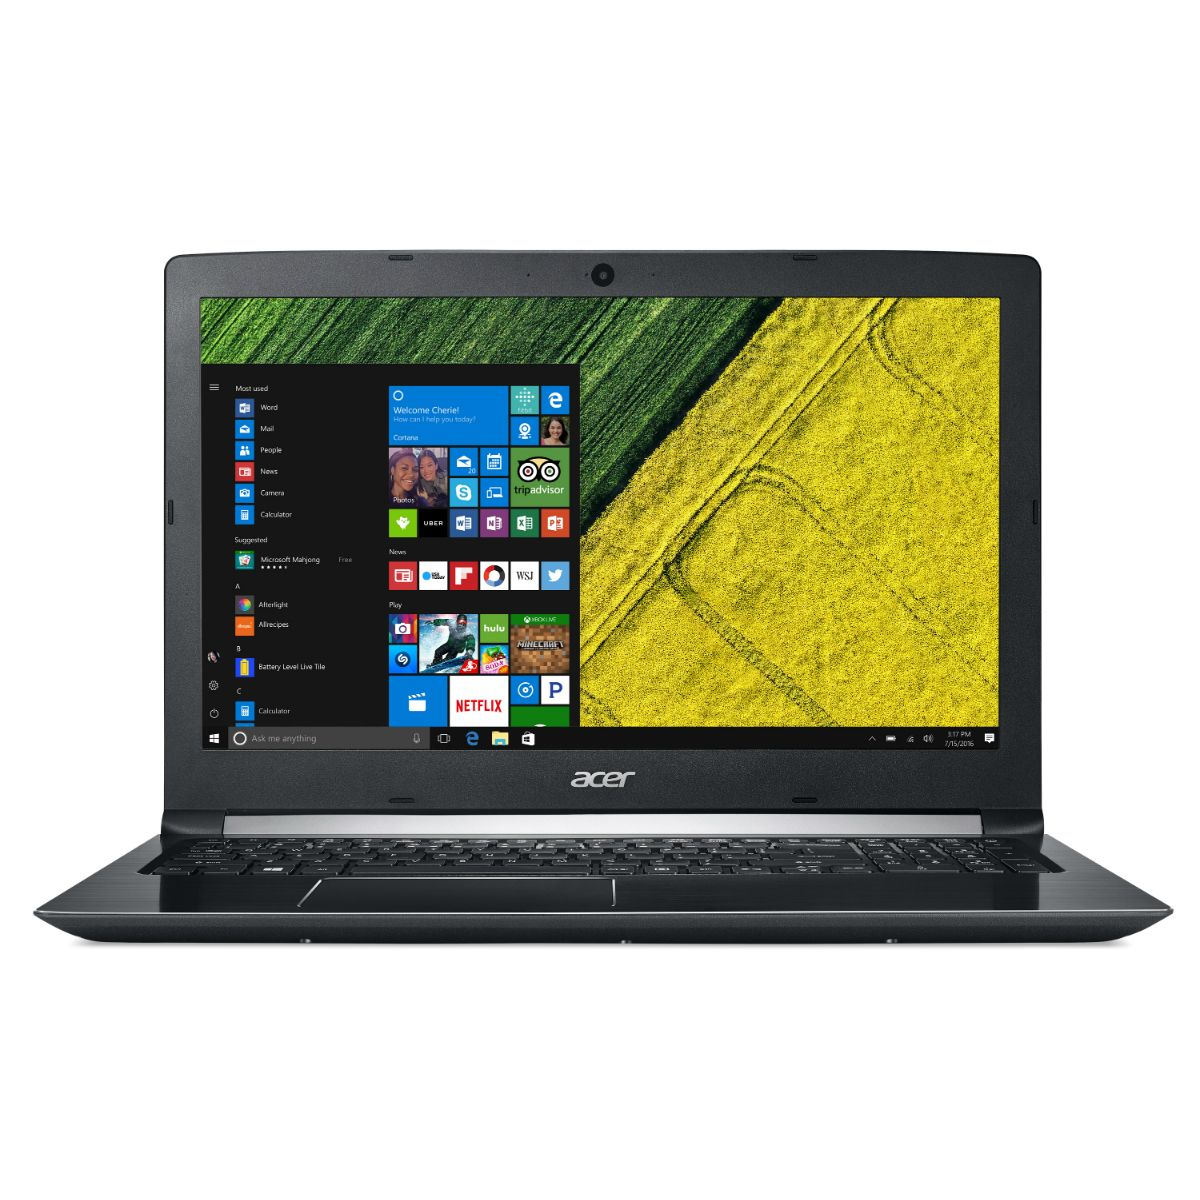 Notebook Acer A515- 51-70re Core I7 (optane) W10h